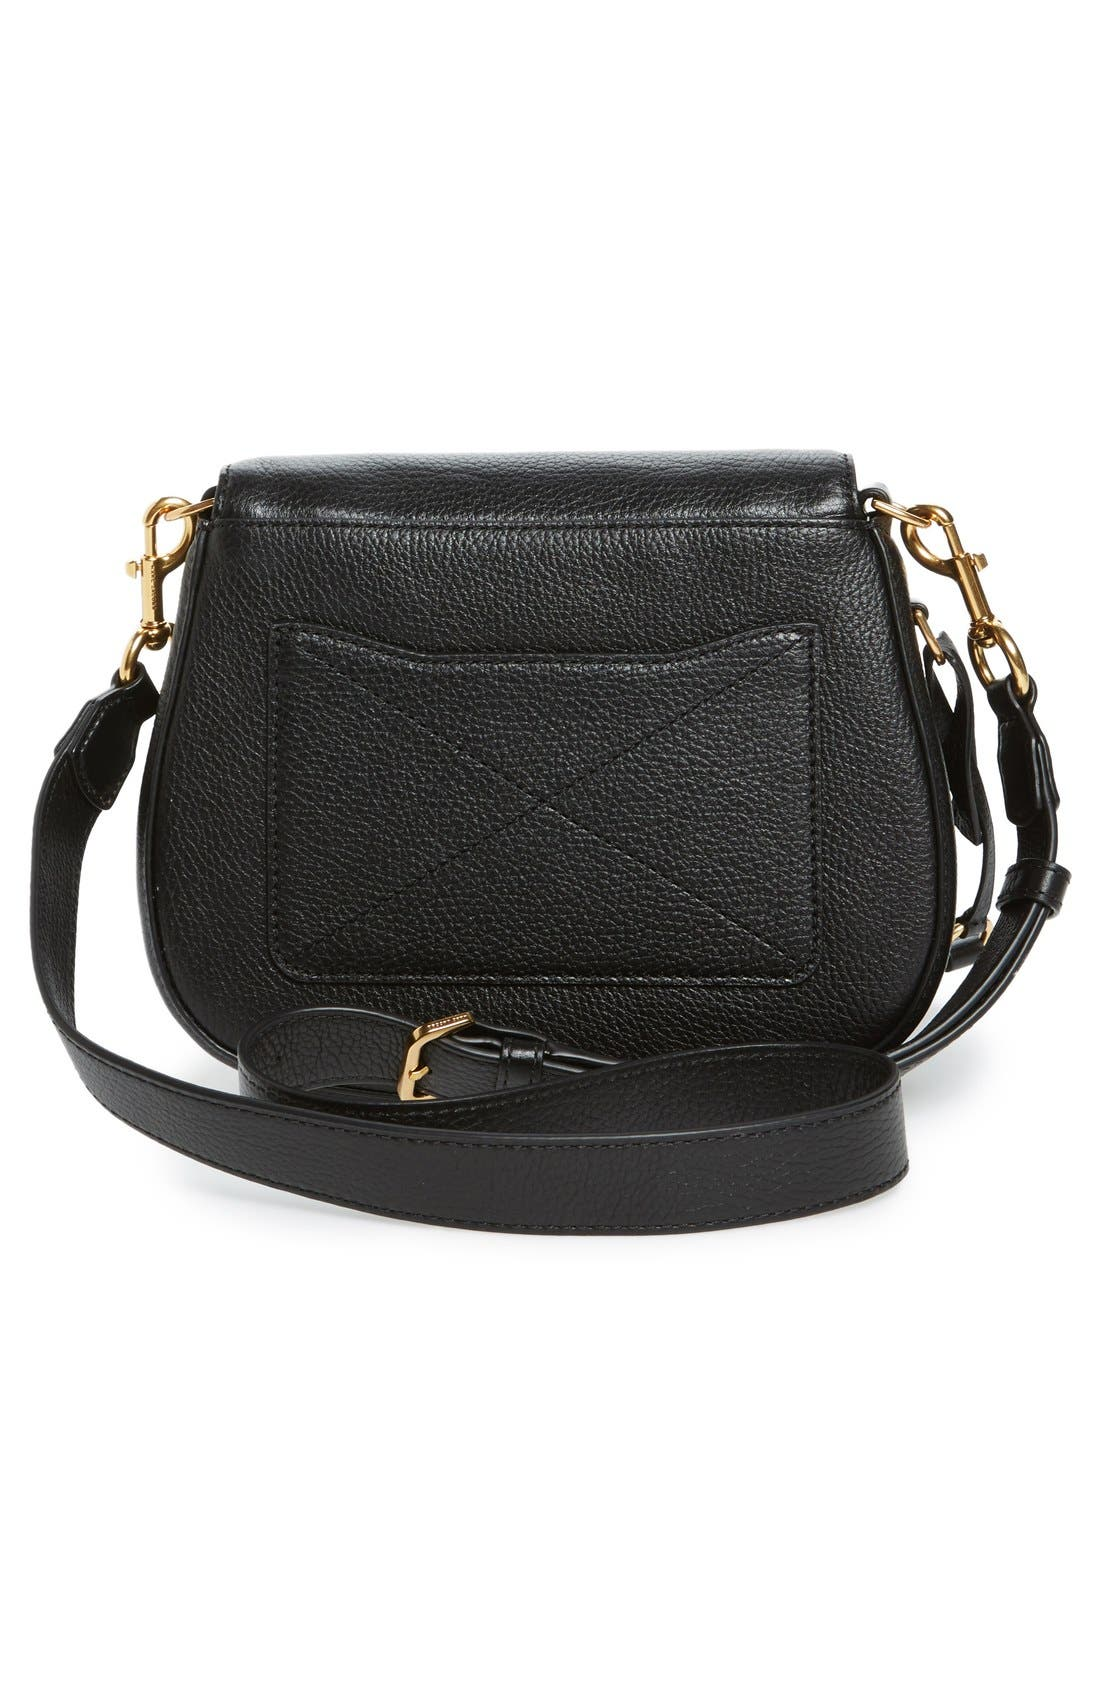 Alternate Image 3  - MARC JACOBS Small Recruit Nomad Pebbled Leather Crossbody Bag